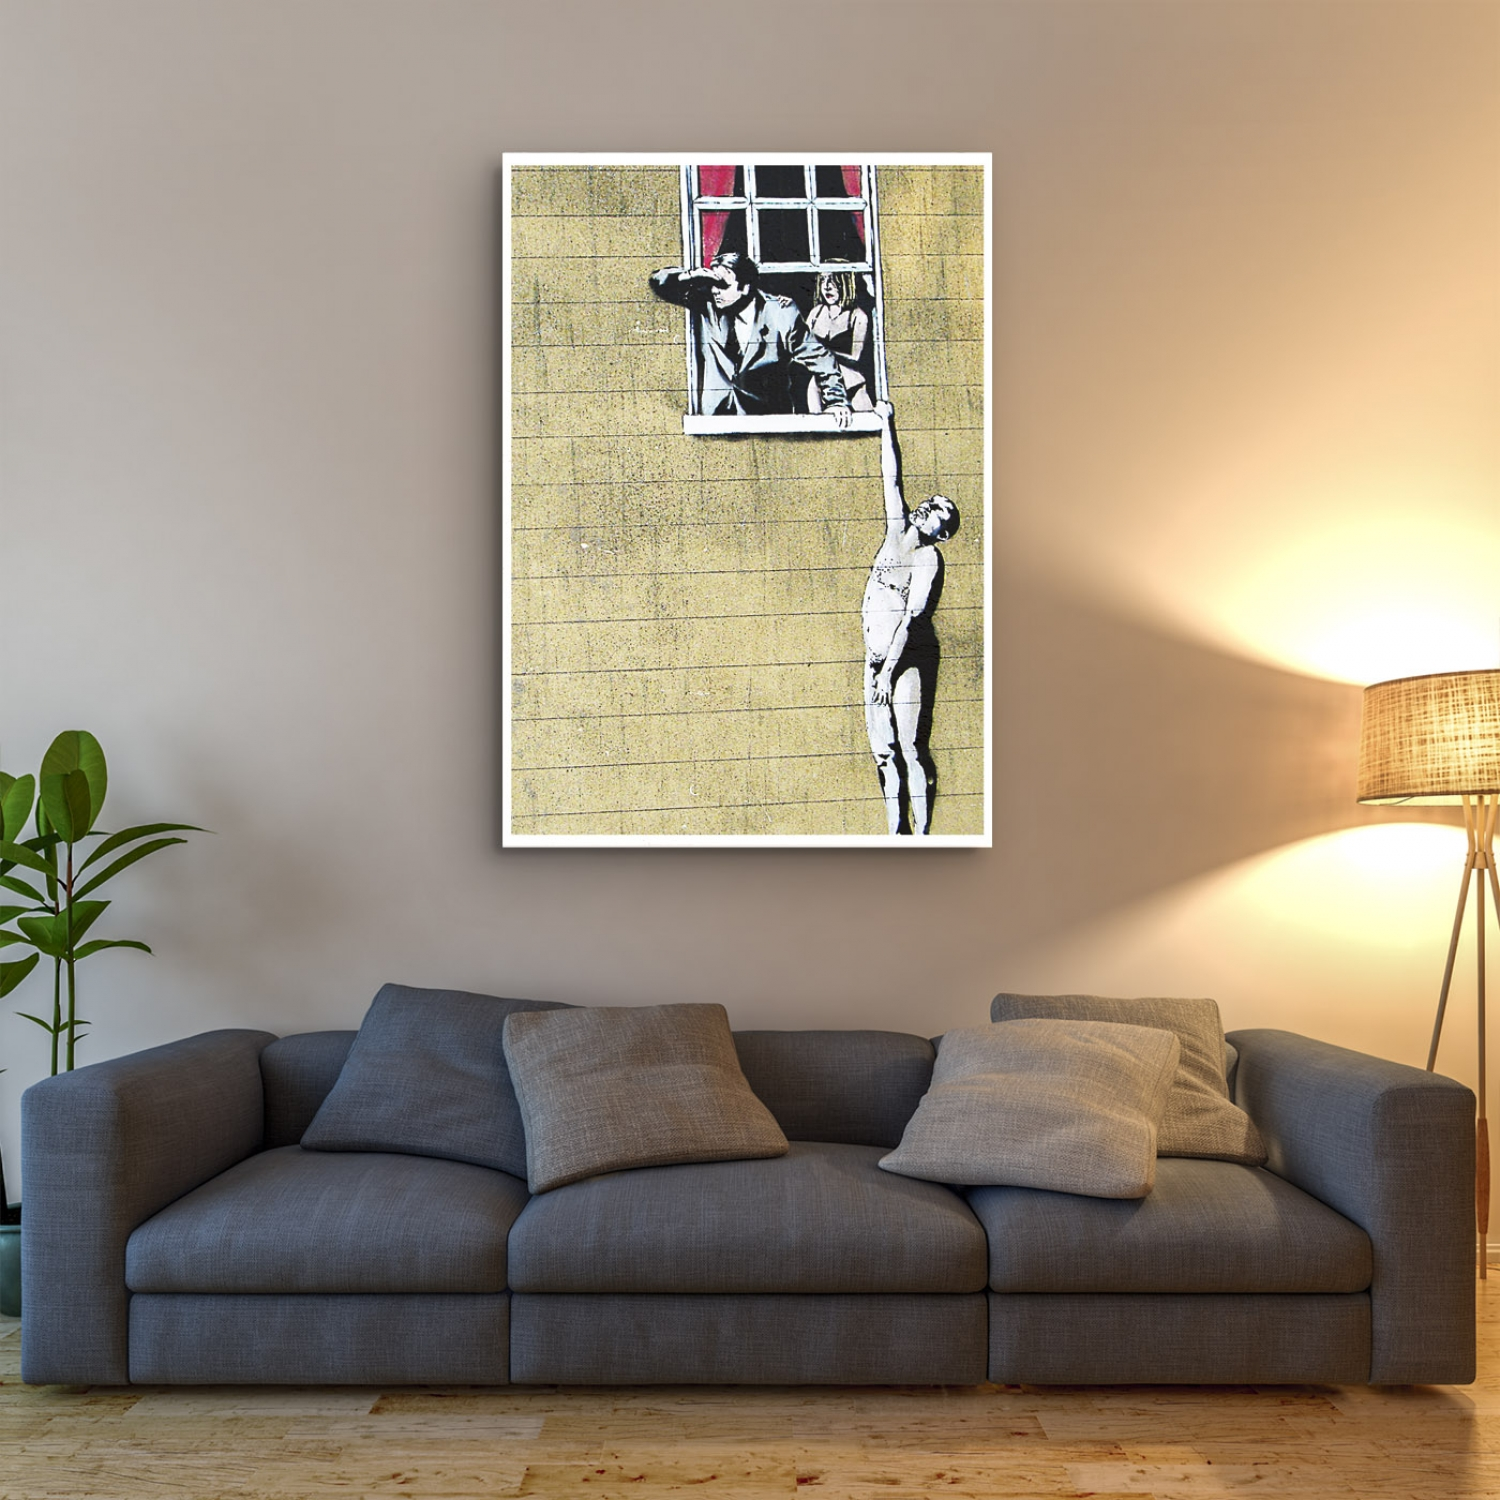 Well Hung! | Banksy Street Art Poster | Just Posters